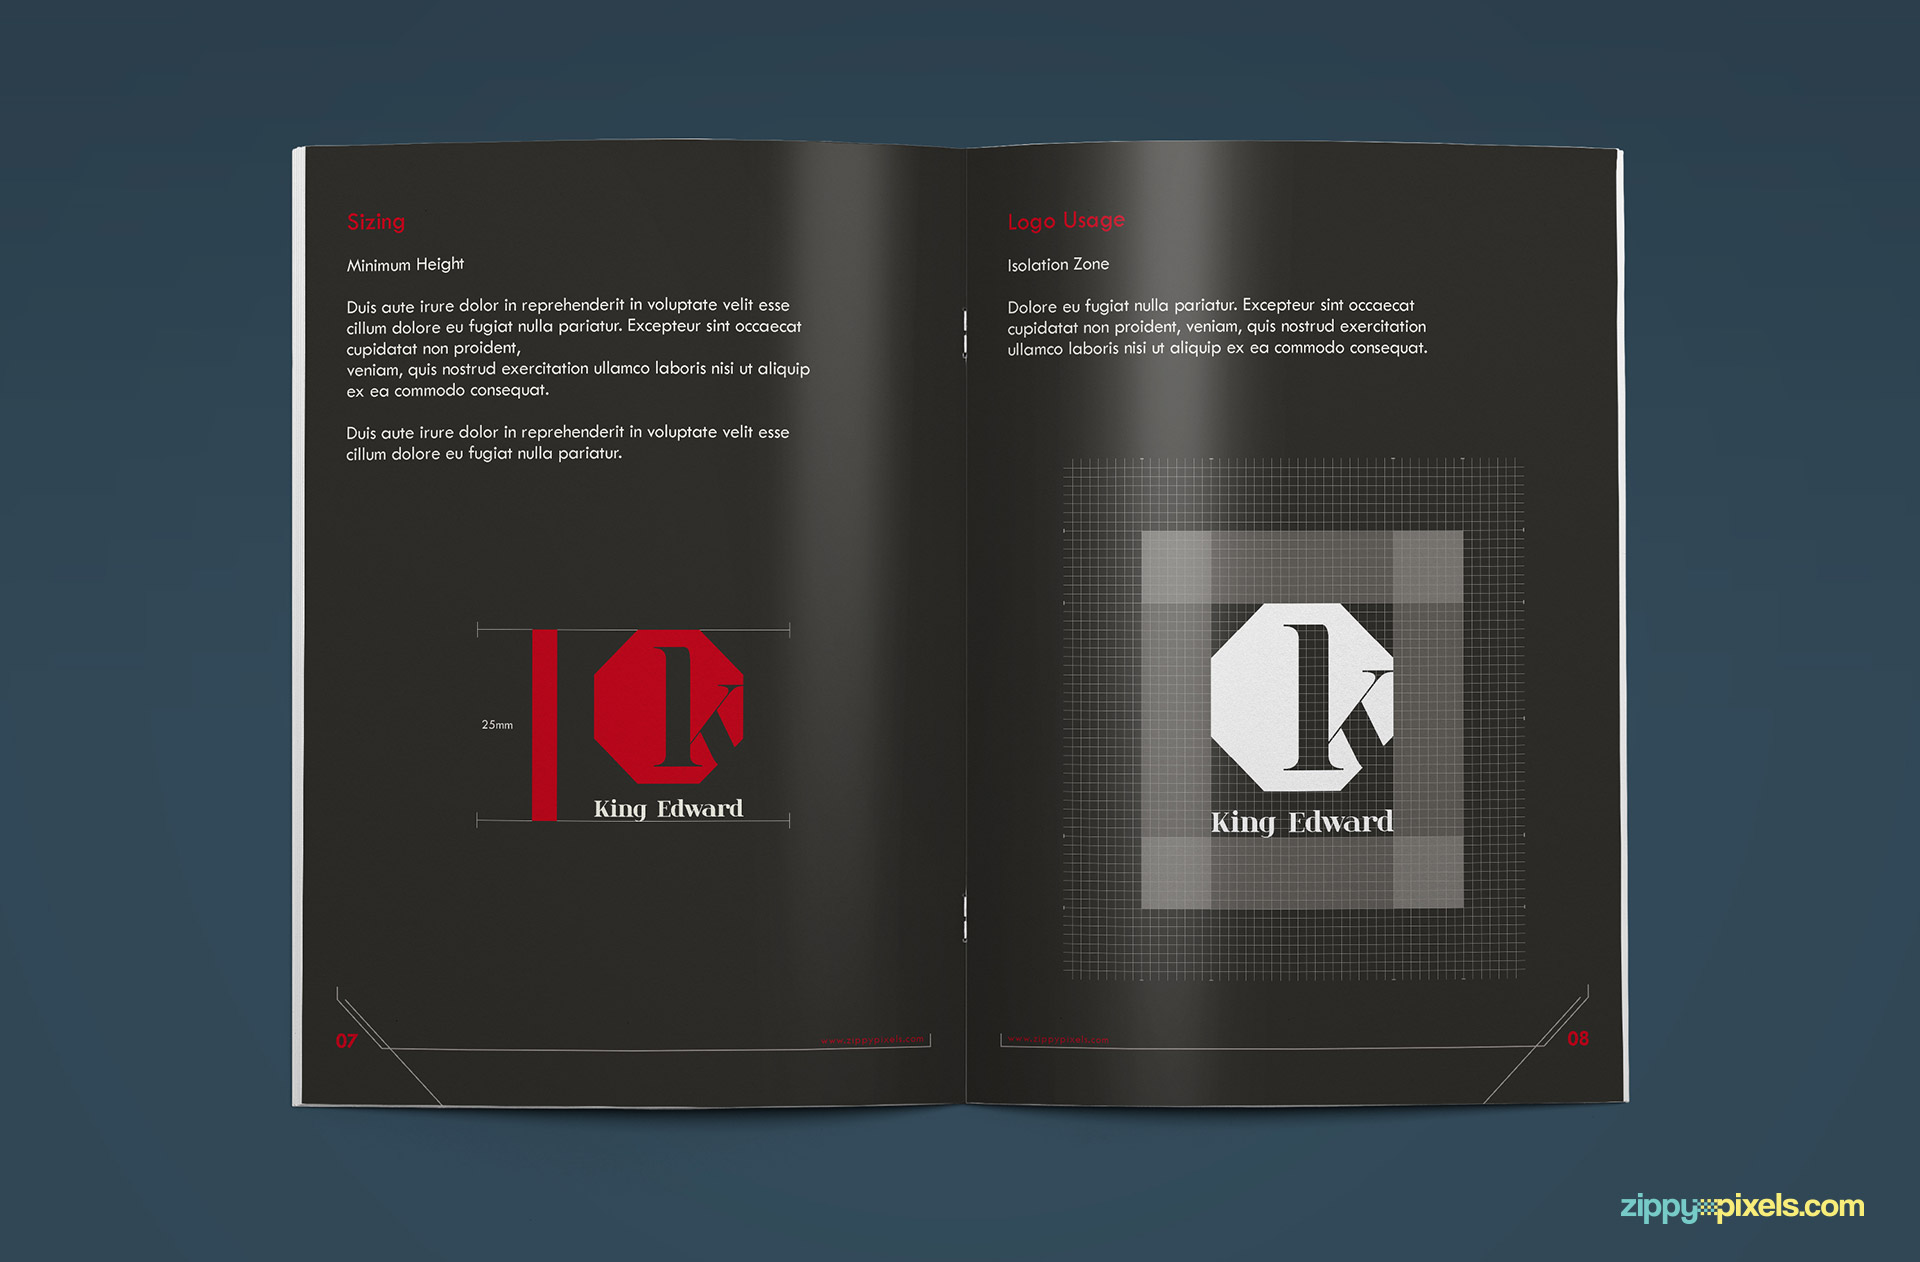 07-brand-book-10-sizing-logo-usage